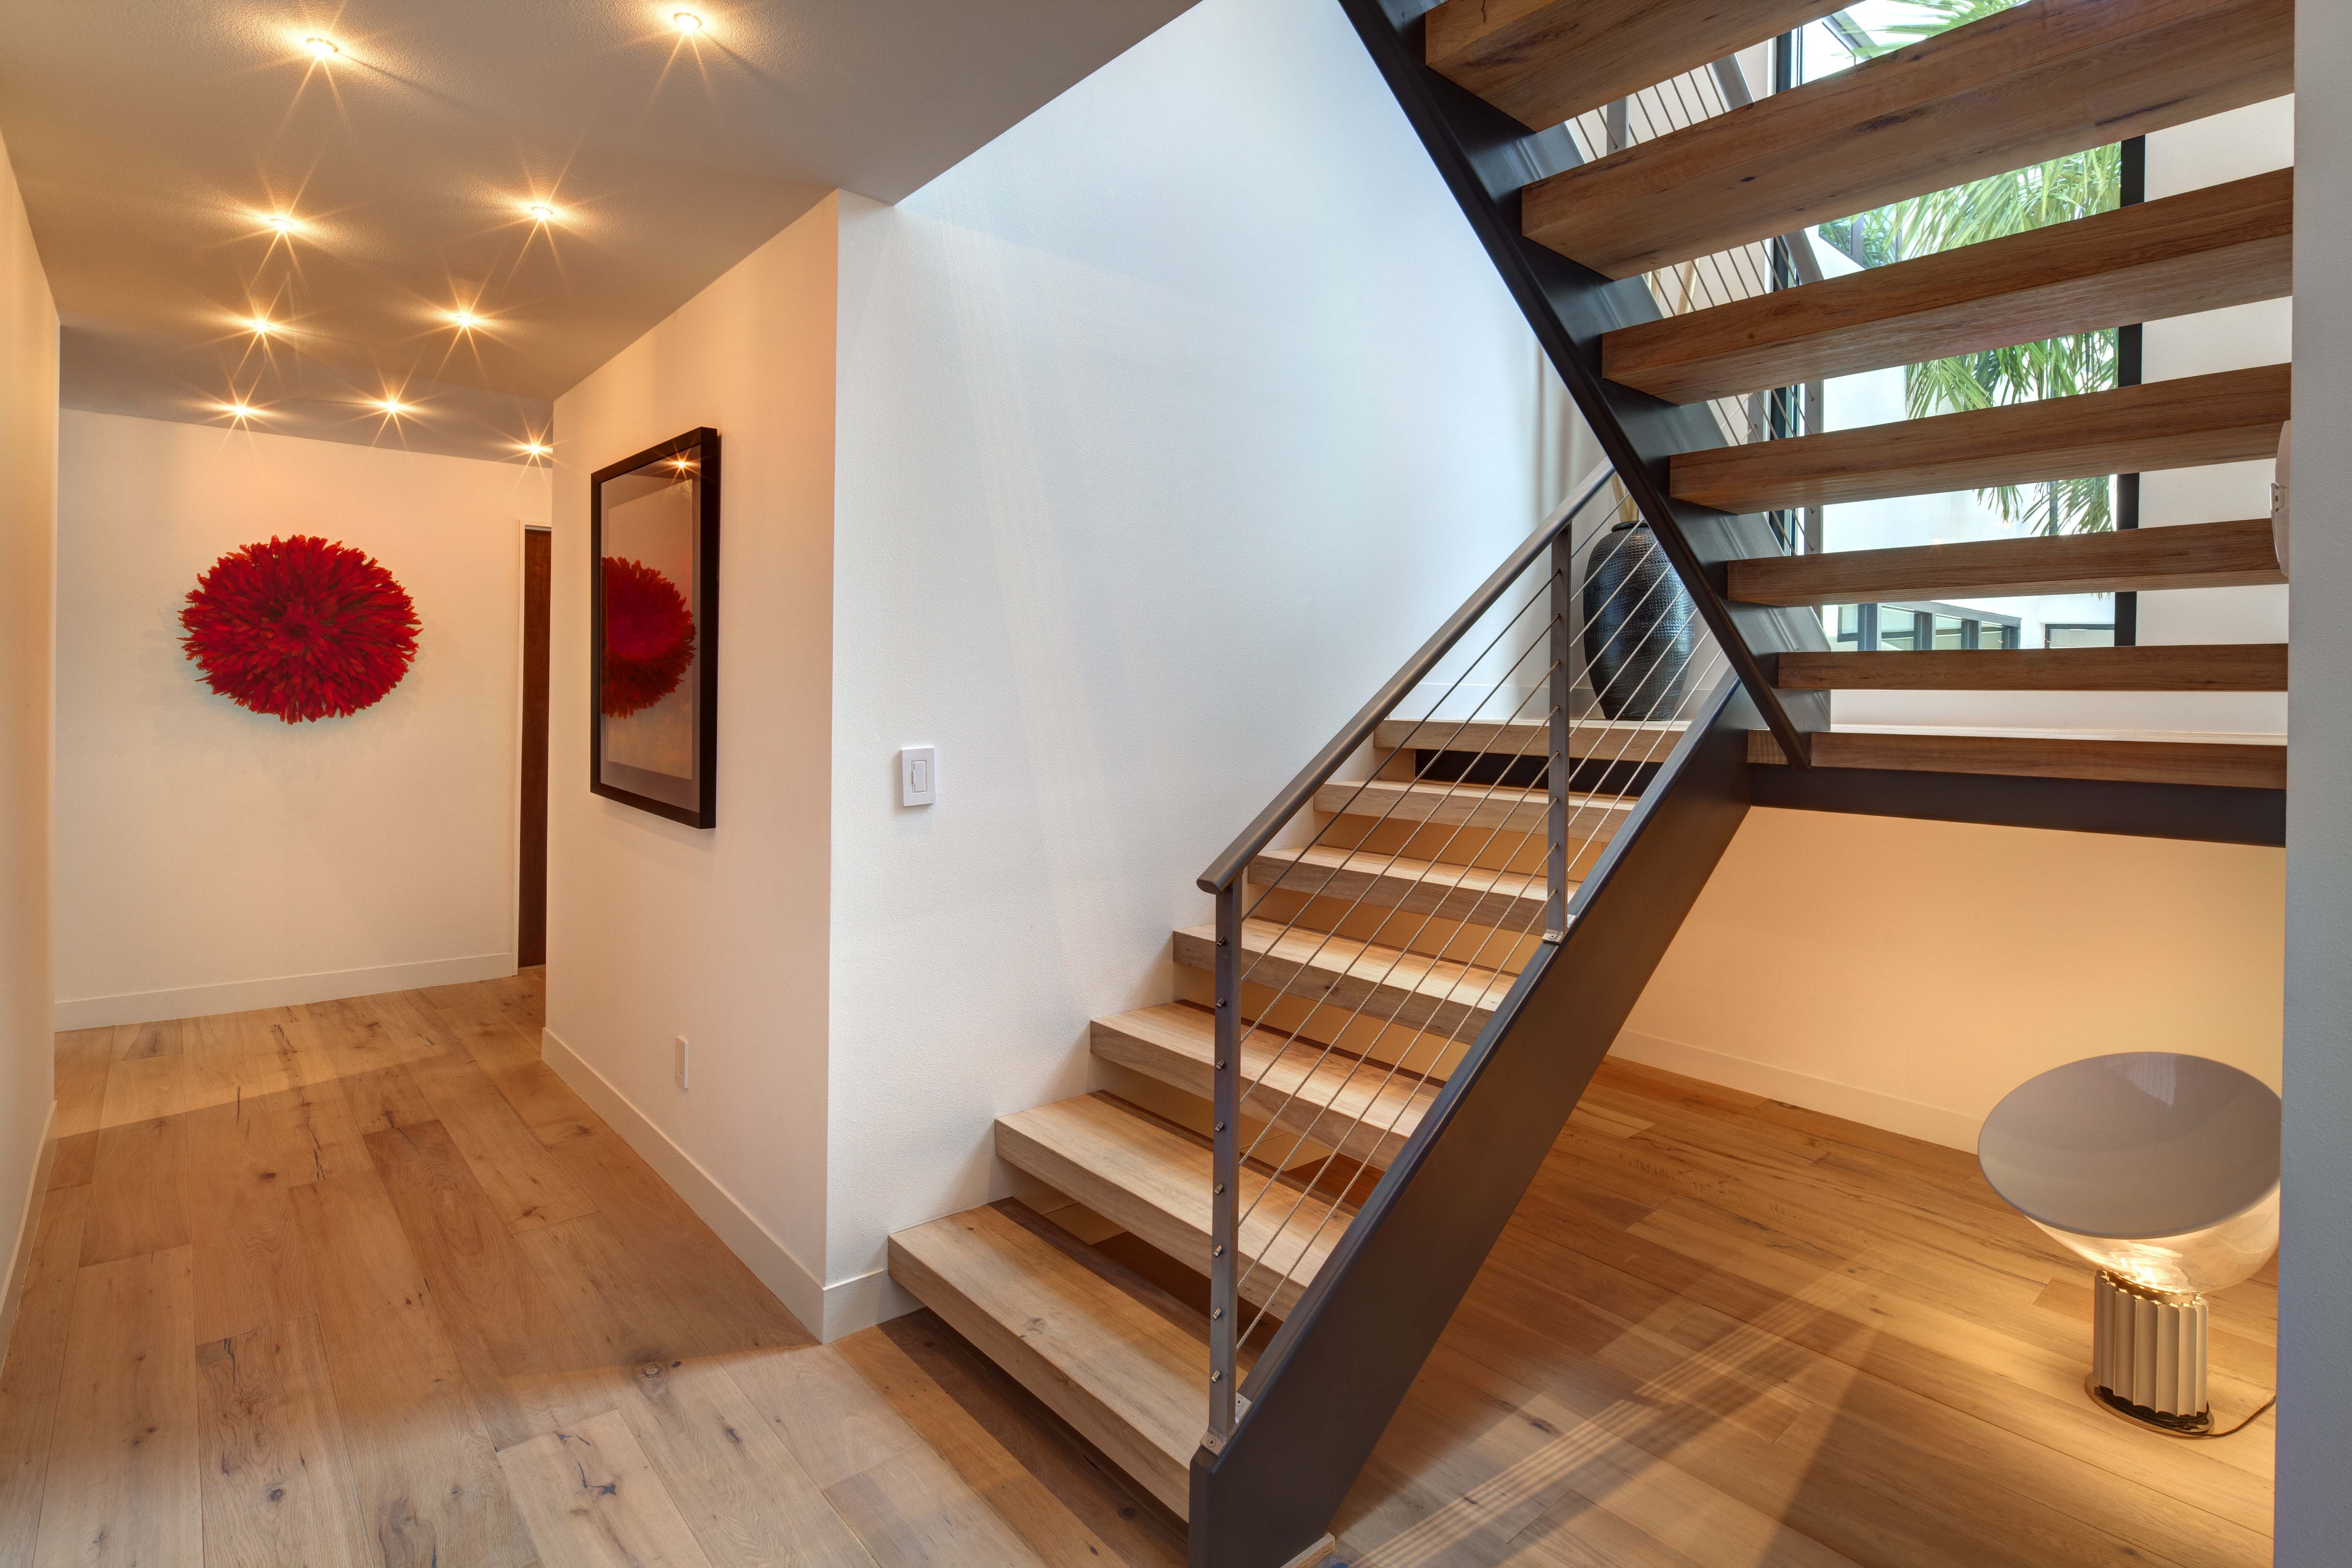 Minimalist Floating Wood Loft Stairs (Image 6 of 10)